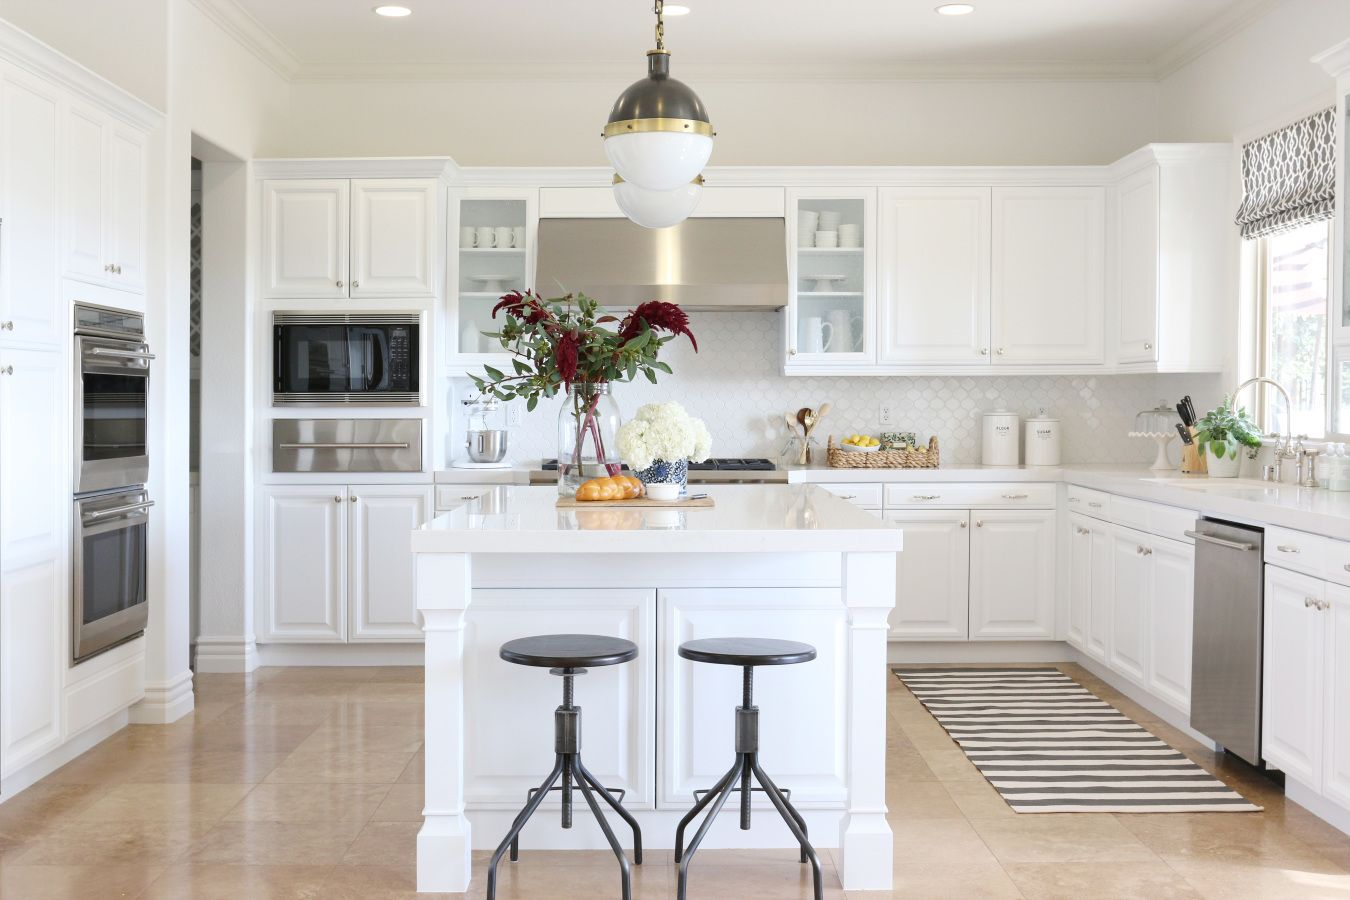 Seriously? This is definitely close to what heaven looks like. White kitchens in general make me abnormally happy, but this one is perfection designed by Studio McGee. It's a to-die-for combo of pretty patterned tile, fun lighting, and classic cabinetry. Don't miss one